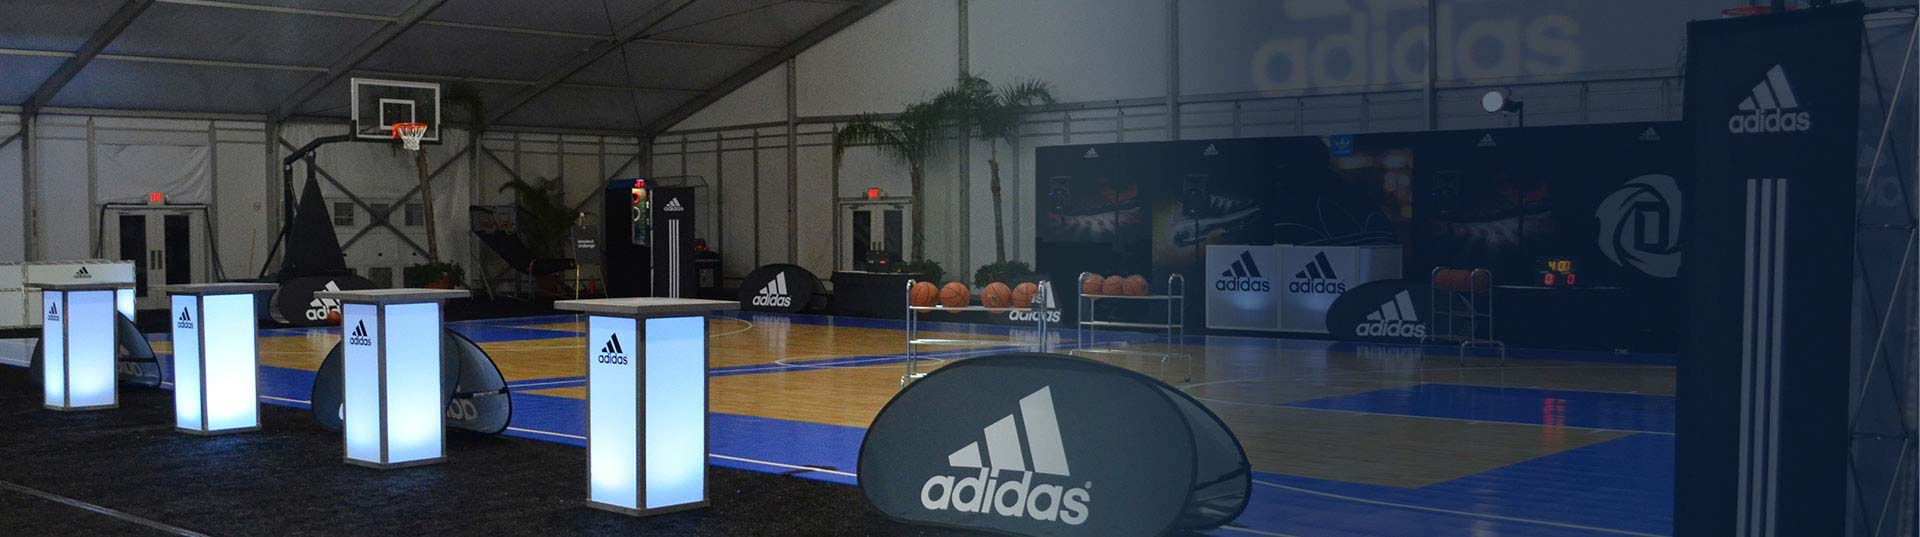 adidas engagement event custom basketball court